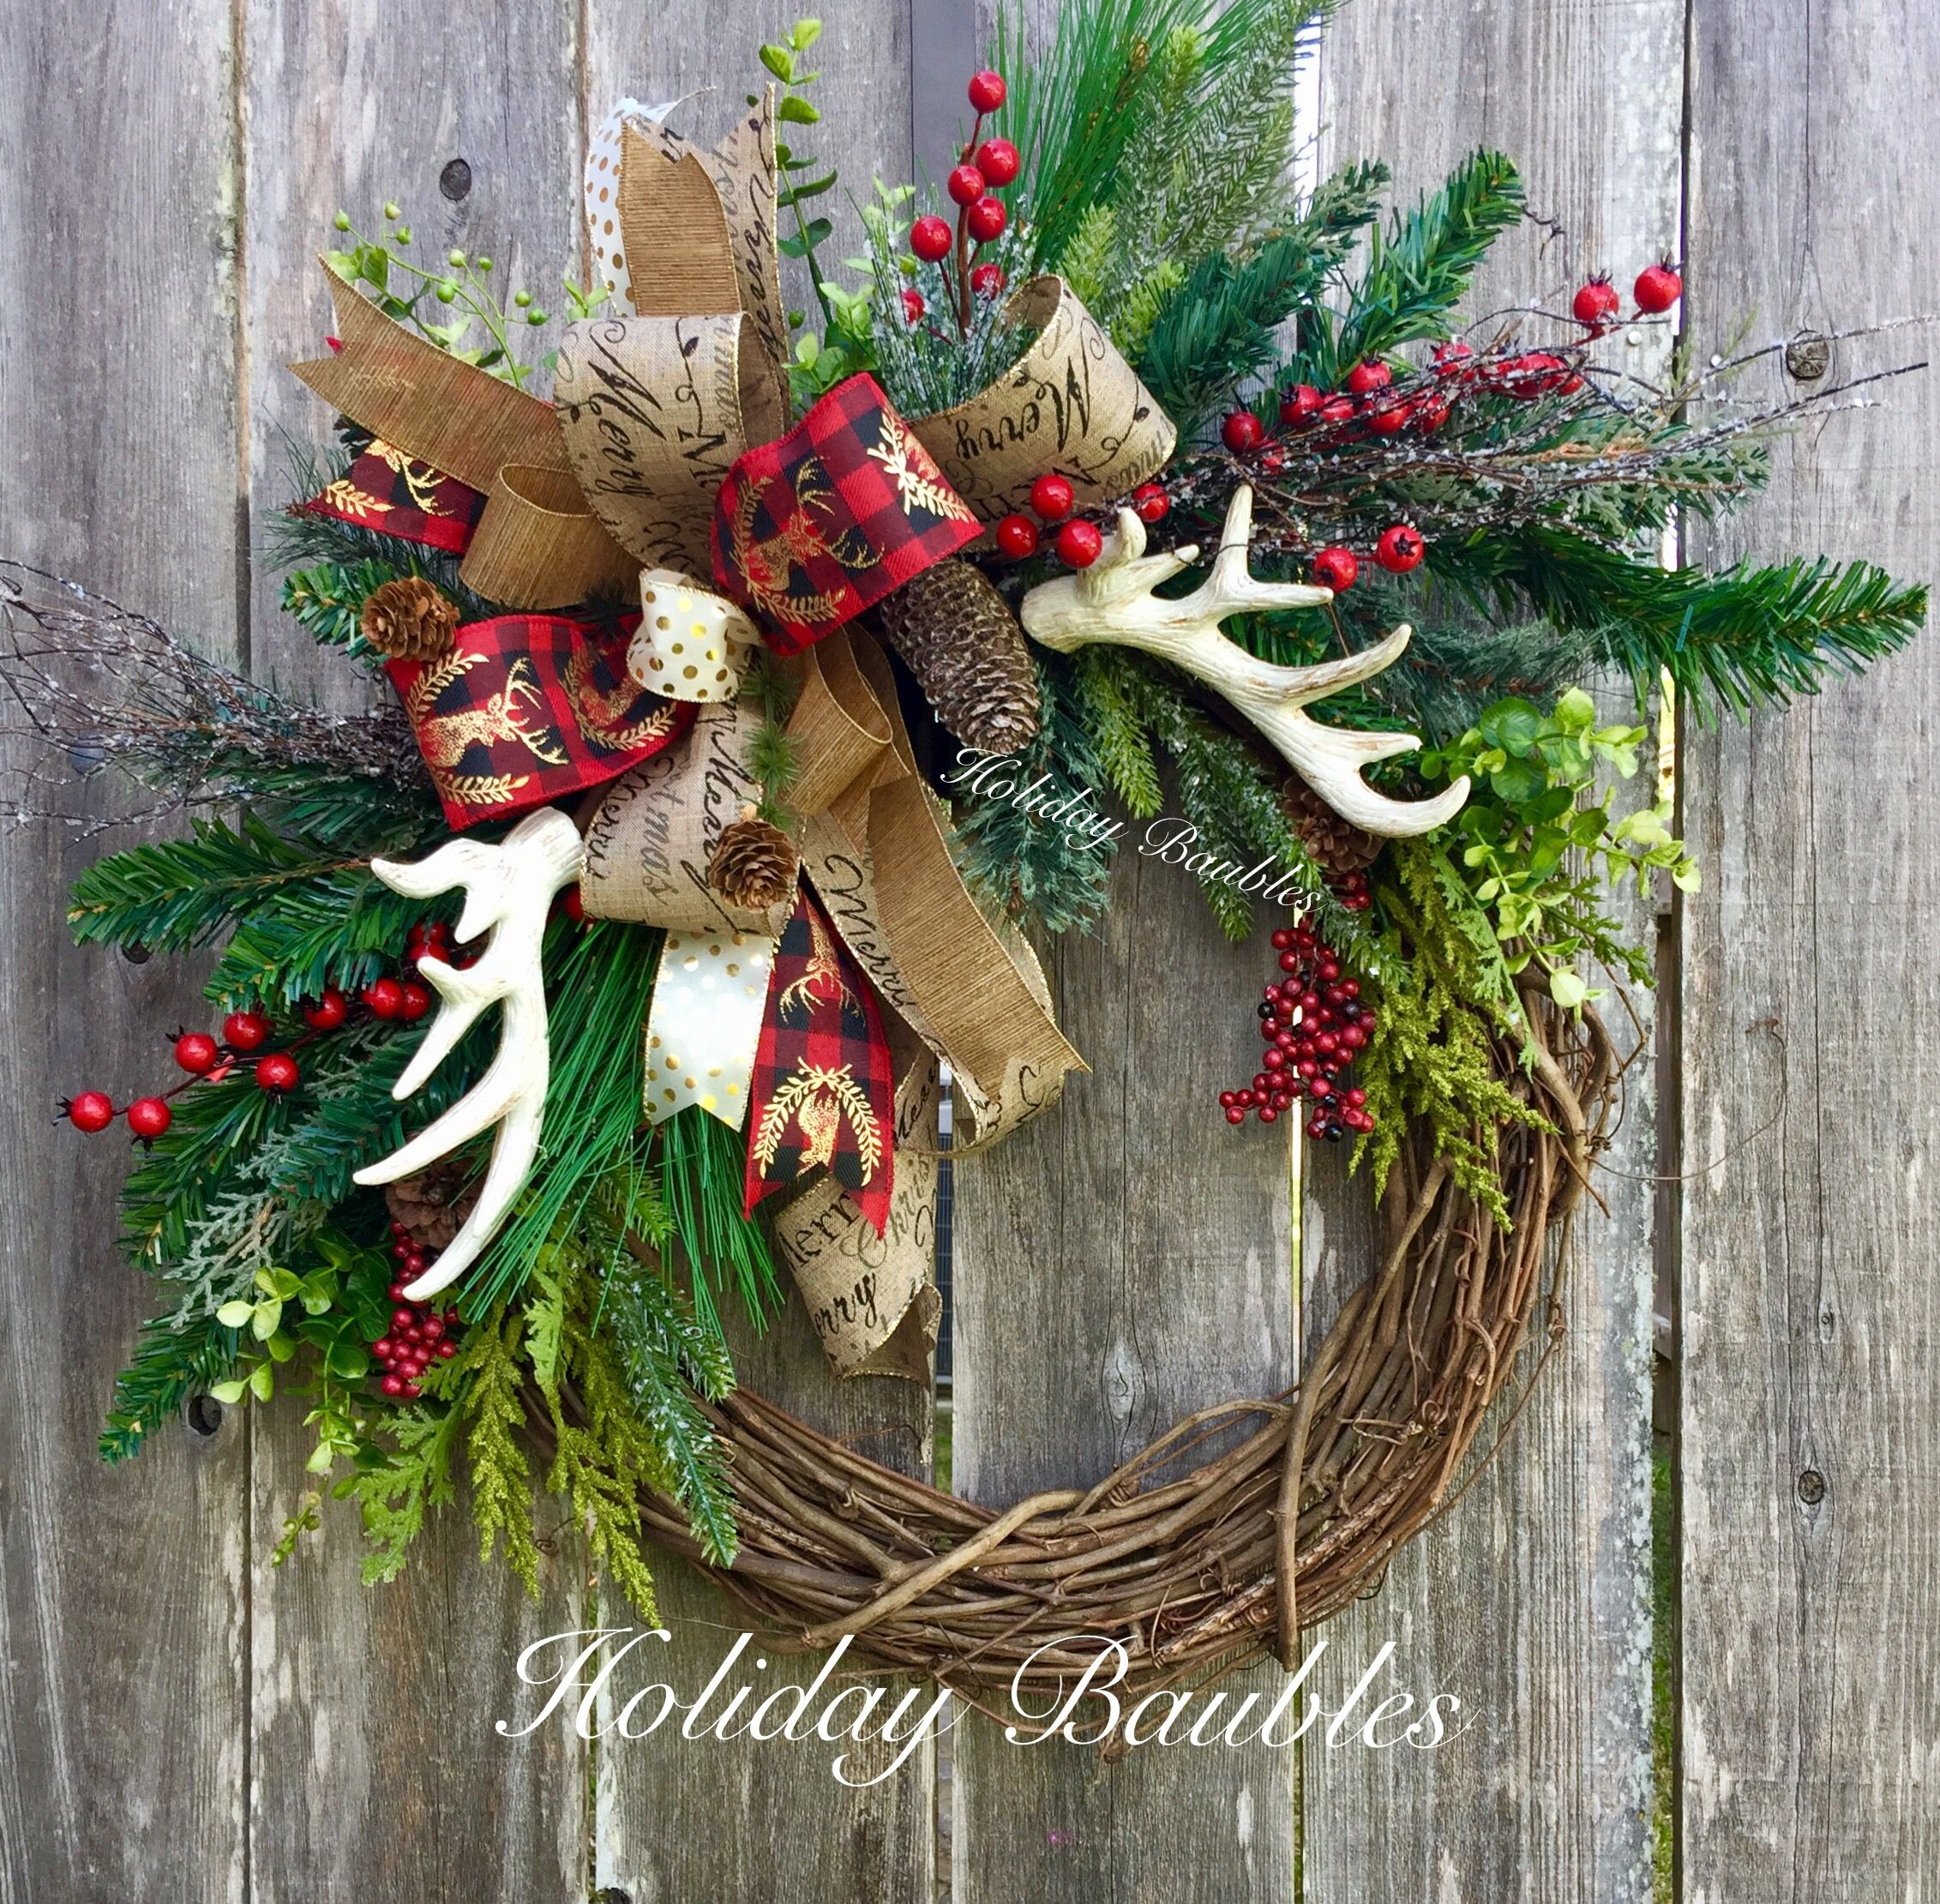 Beautiful Christmas Wreath With Rustic Look Perfect For